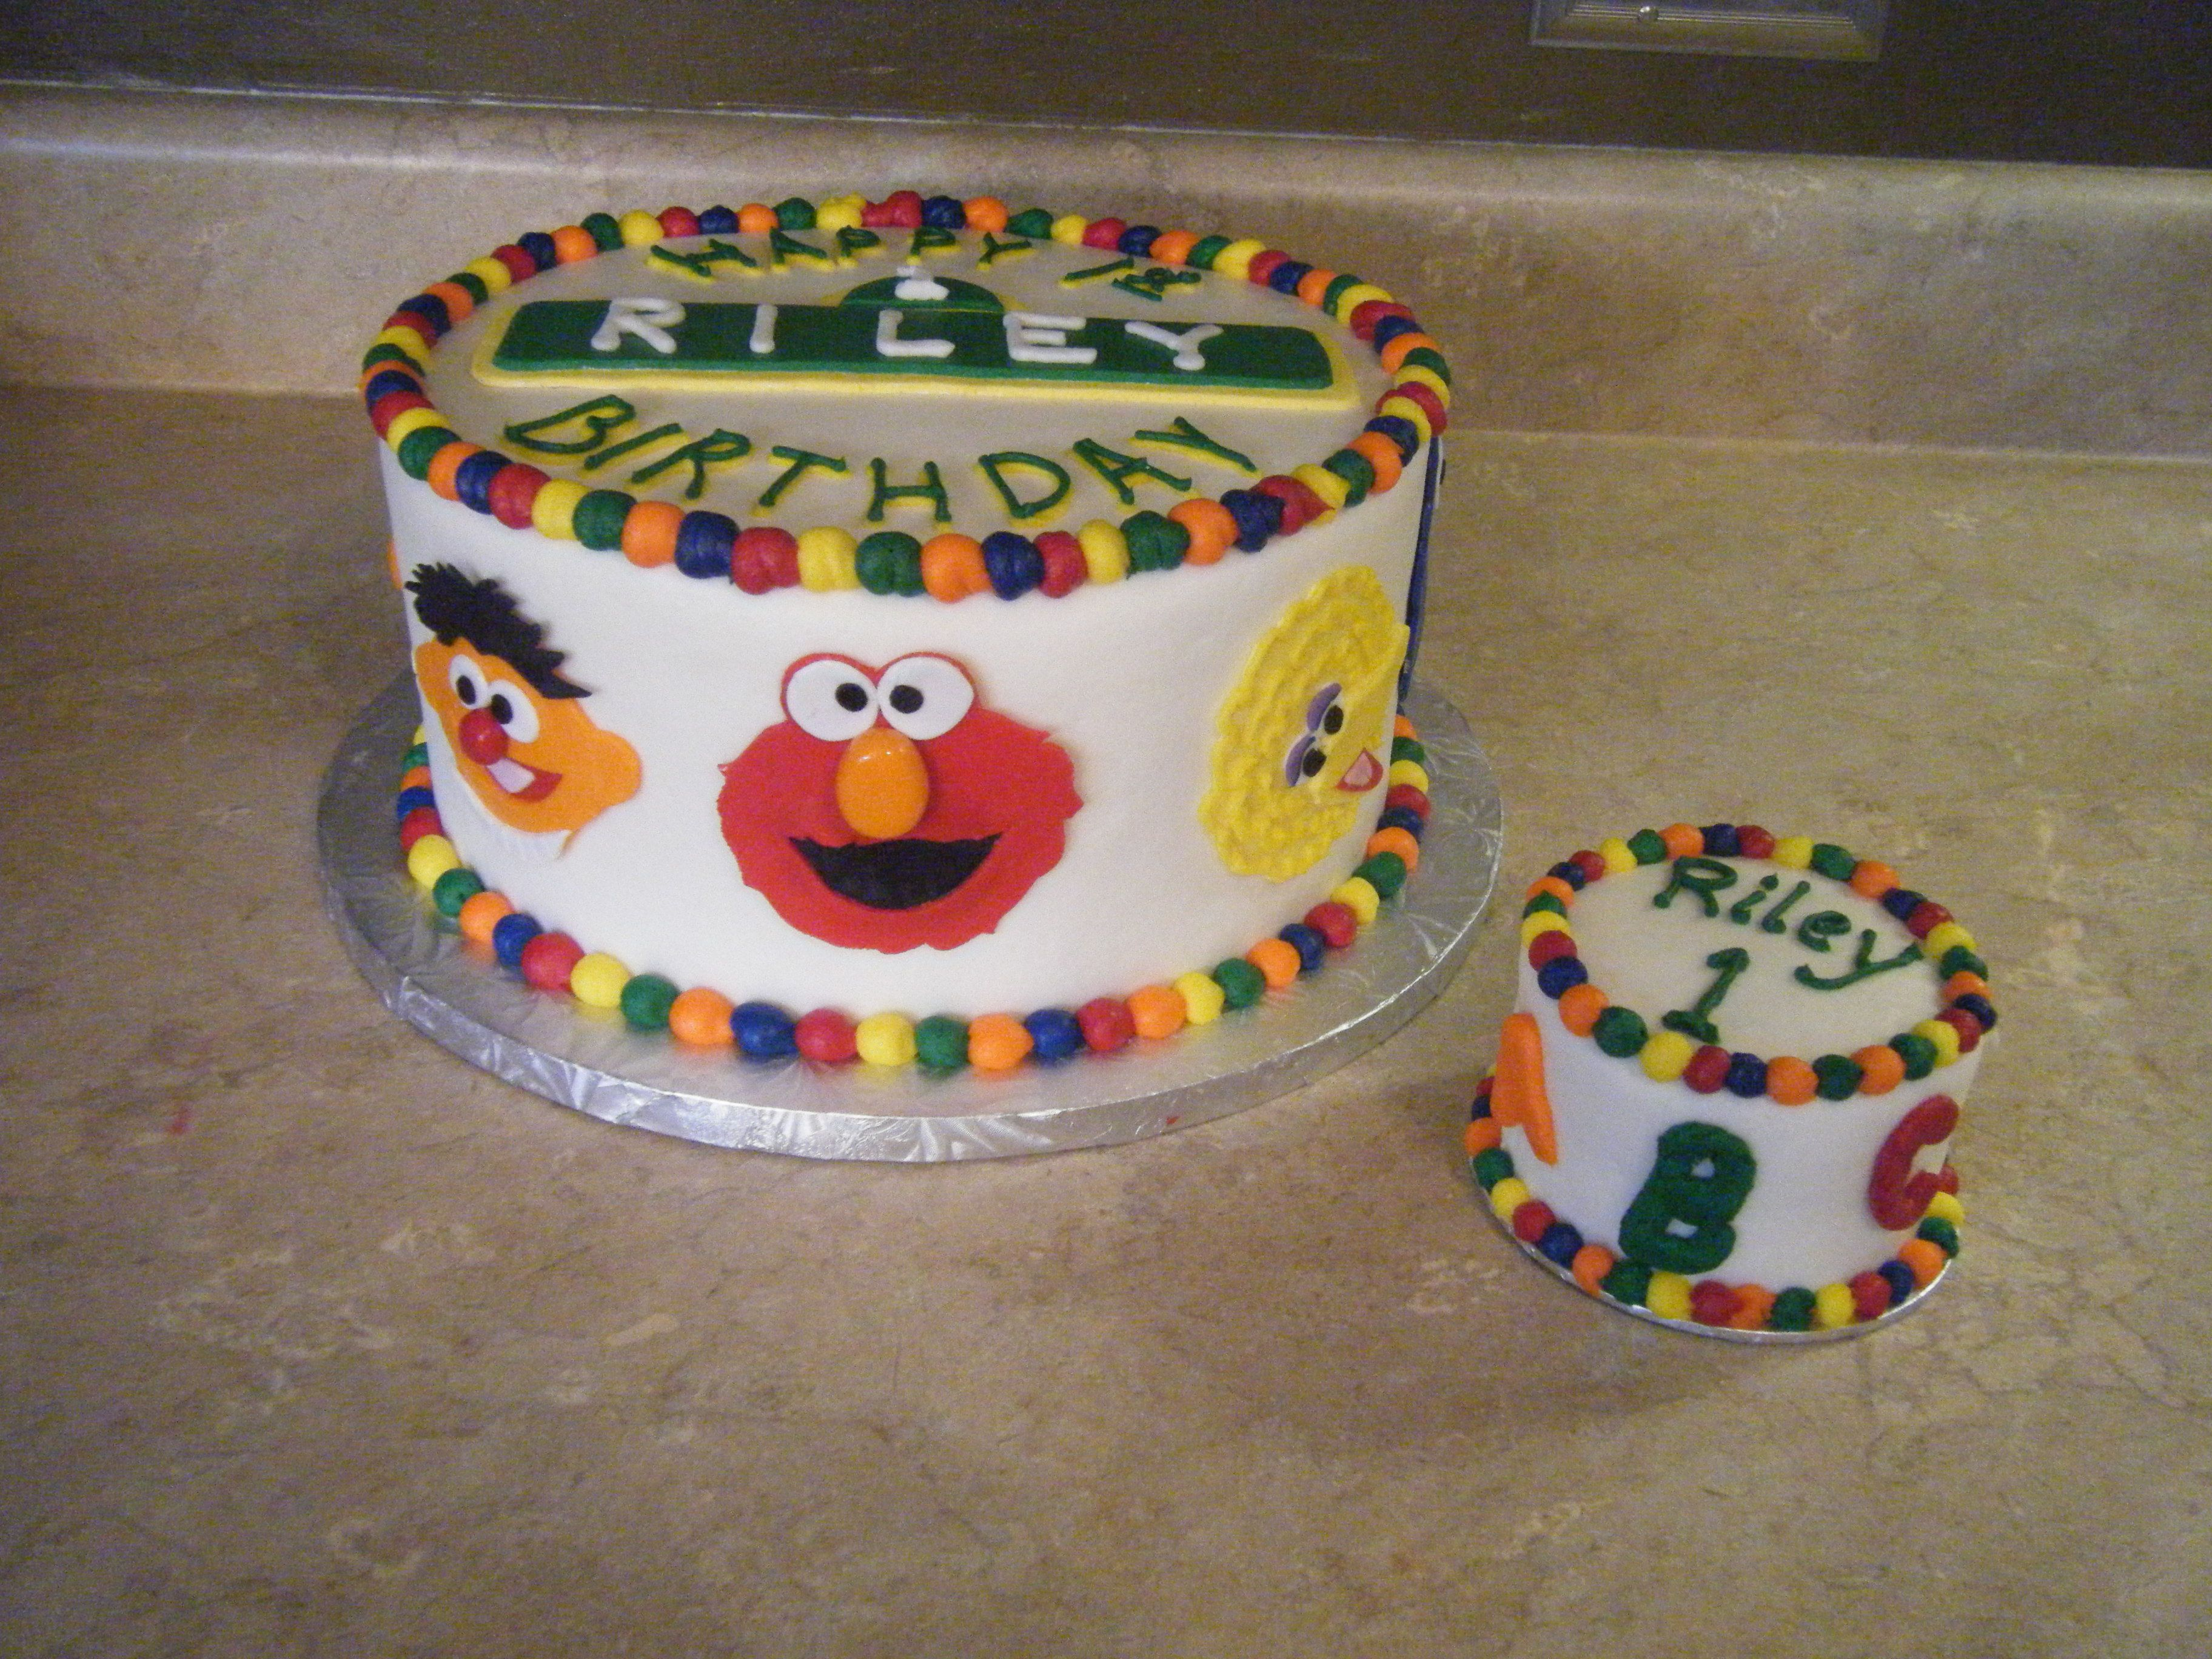 Stupendous Sesame Street First Birthday Cake With Abc 123 Smash Cake With Personalised Birthday Cards Sponlily Jamesorg